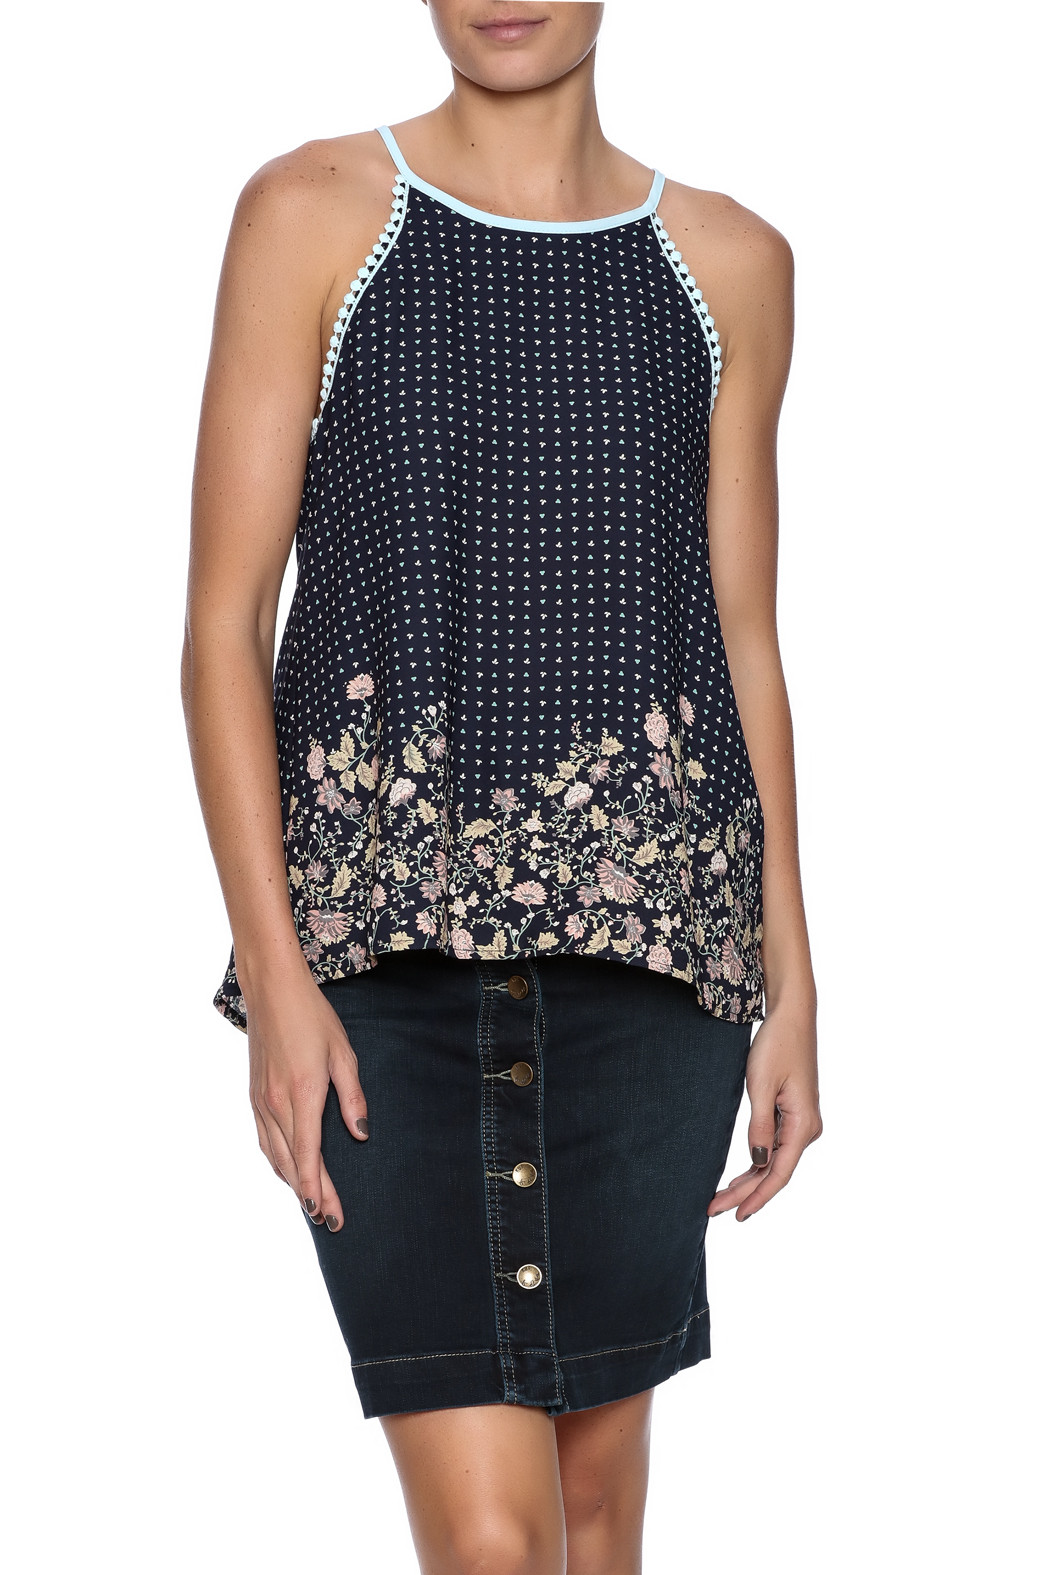 Inspirational Le Lis Floral Crochet Tank From Texas by Minx Boutique Crochet Tank Of Delightful 47 Images Crochet Tank